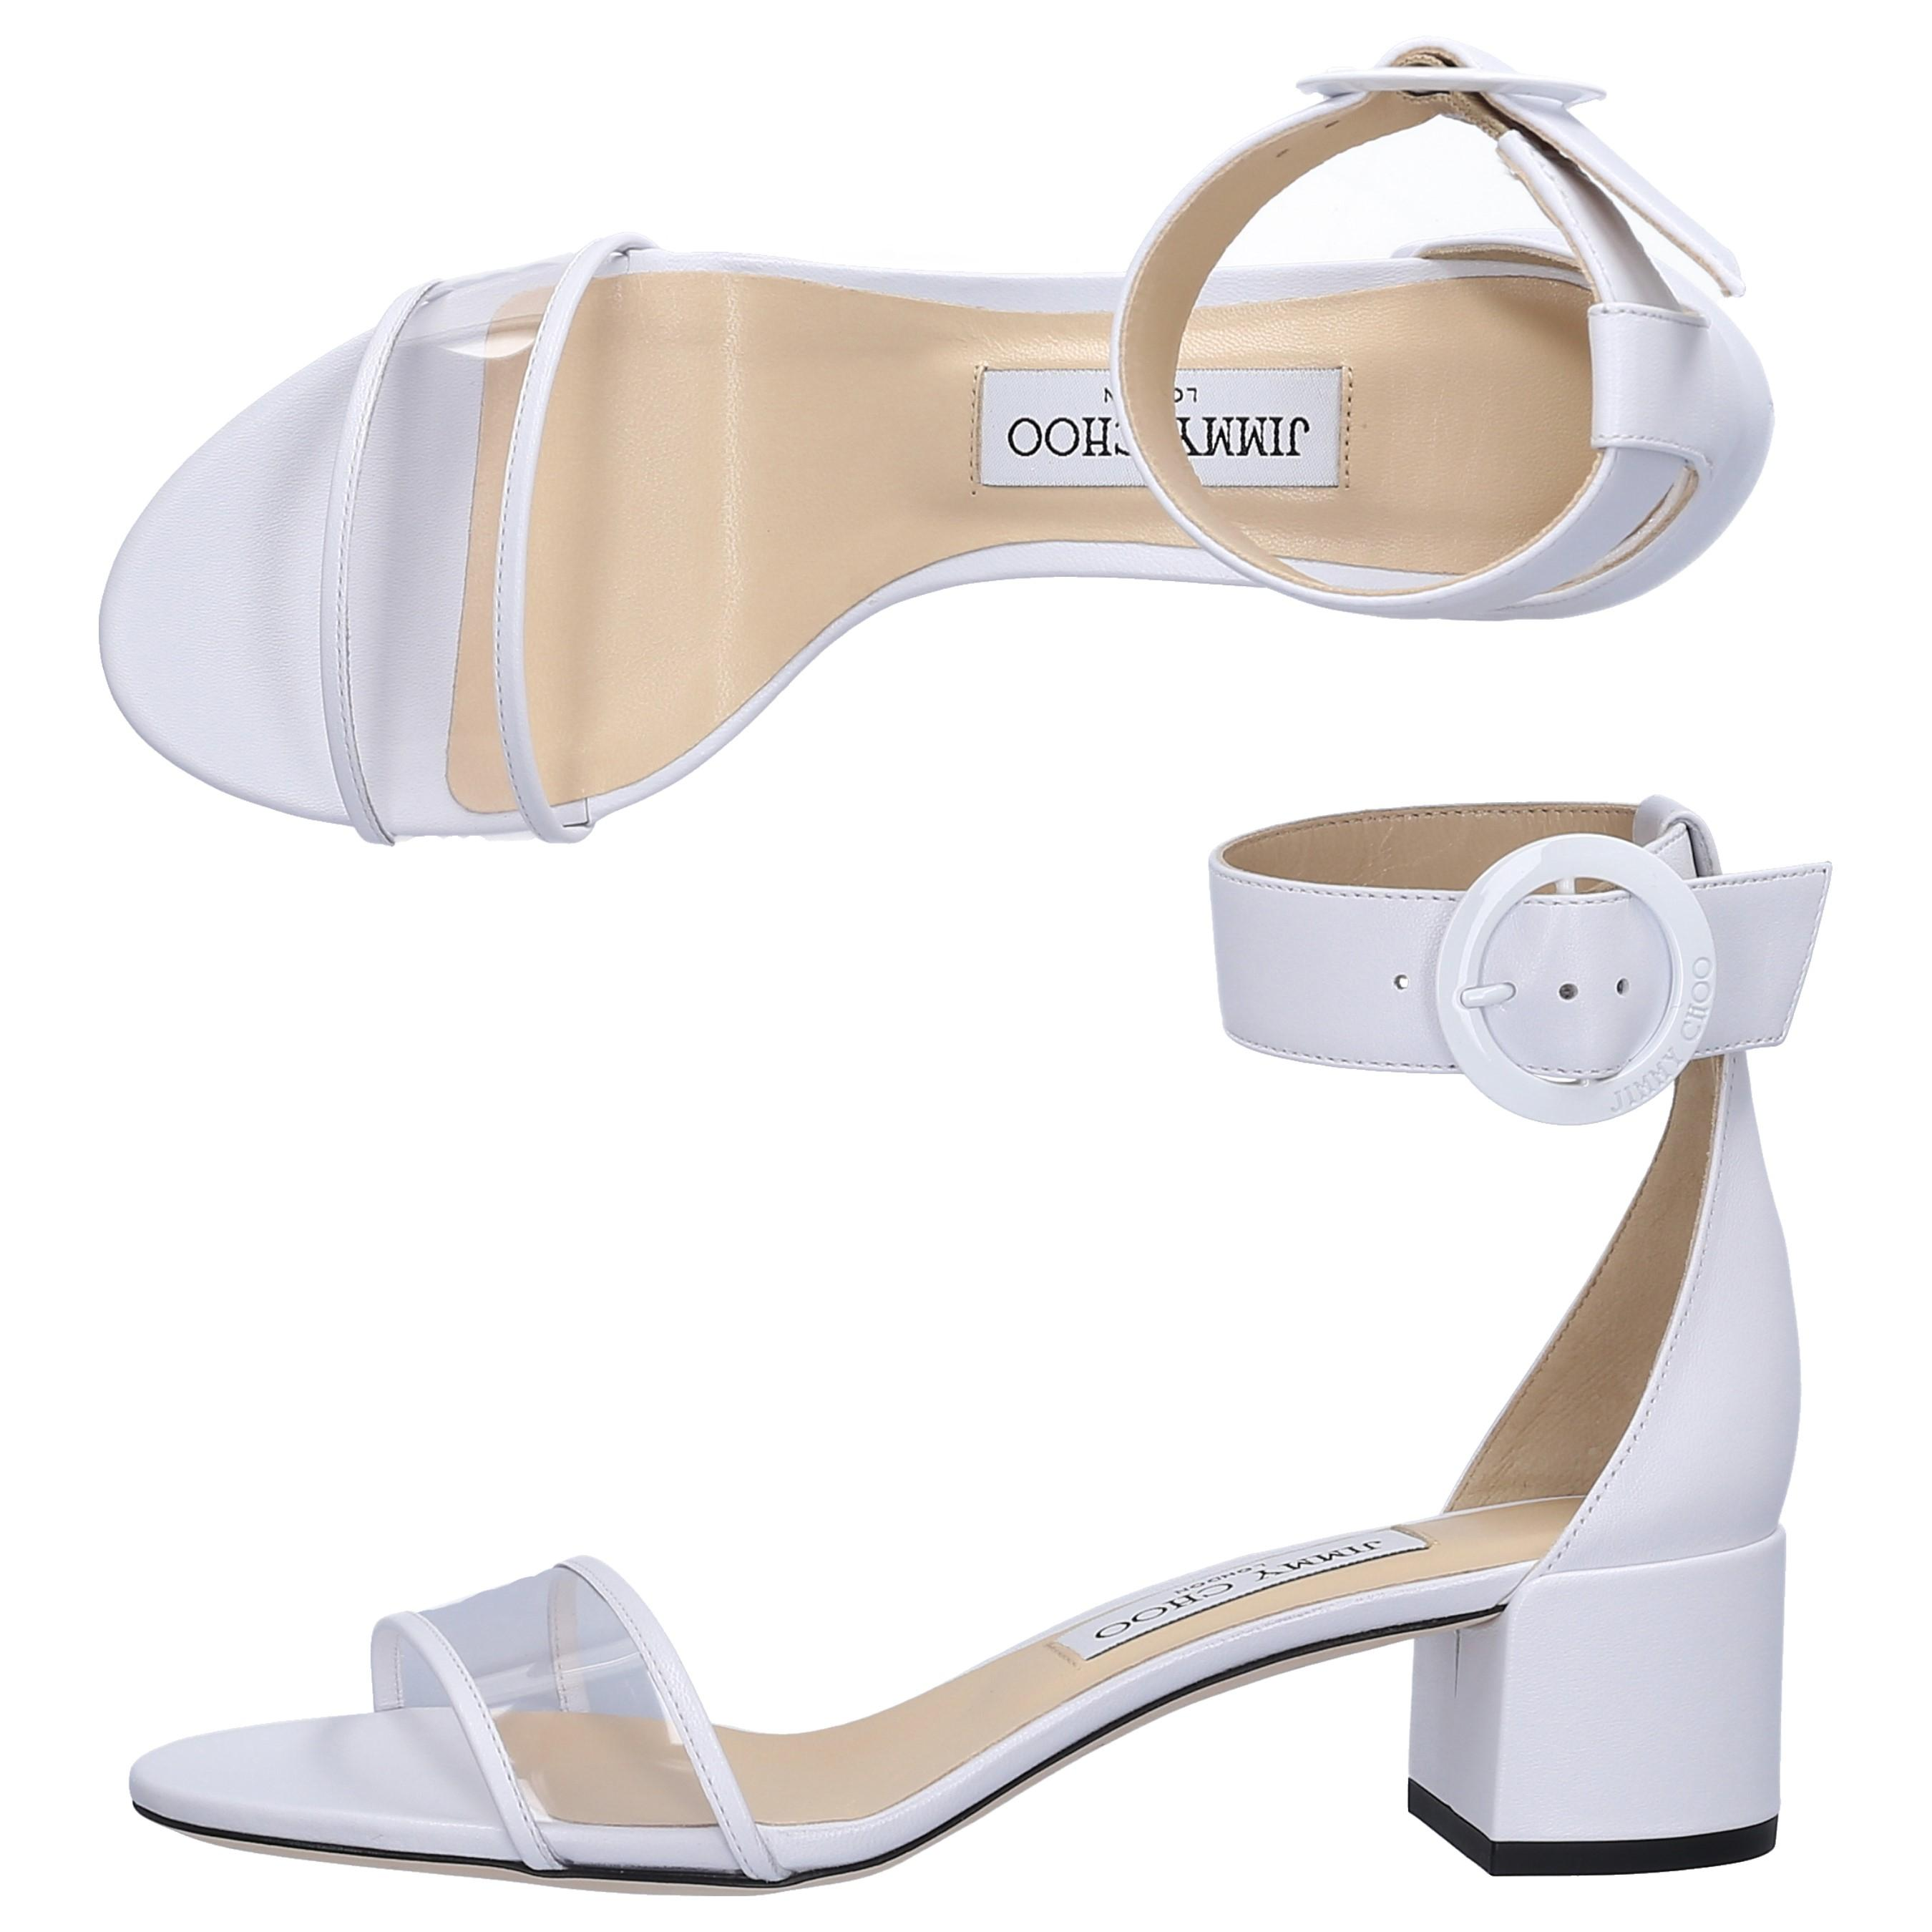 2dd7dcb8dc456 Women's Sandals Jaime Nappa Leather Pvc White